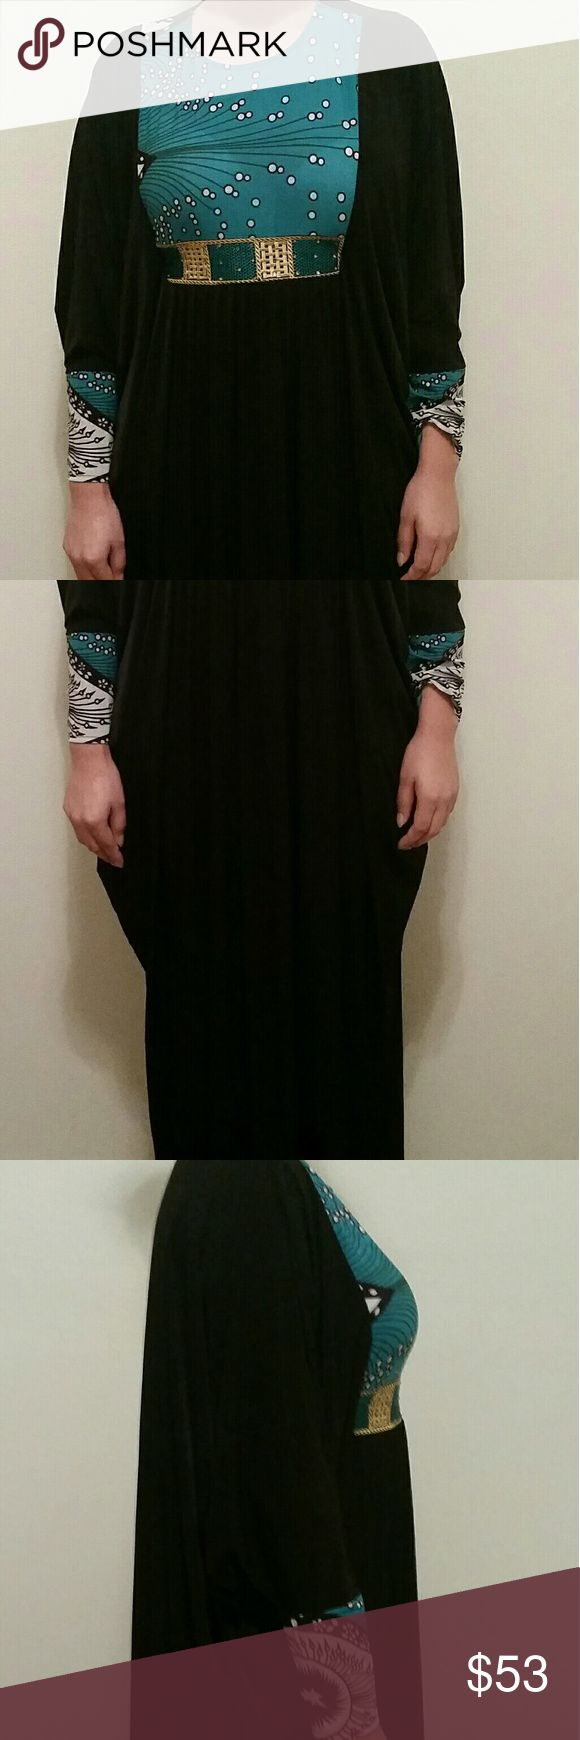 Abaya One size fits all. Bought in UAE, used 1 time for prayer at mosque, very clean looks like its never been used. Has the option to adjust waist, if you want more of a fitting look. Very beatiful! Dresses Maxi